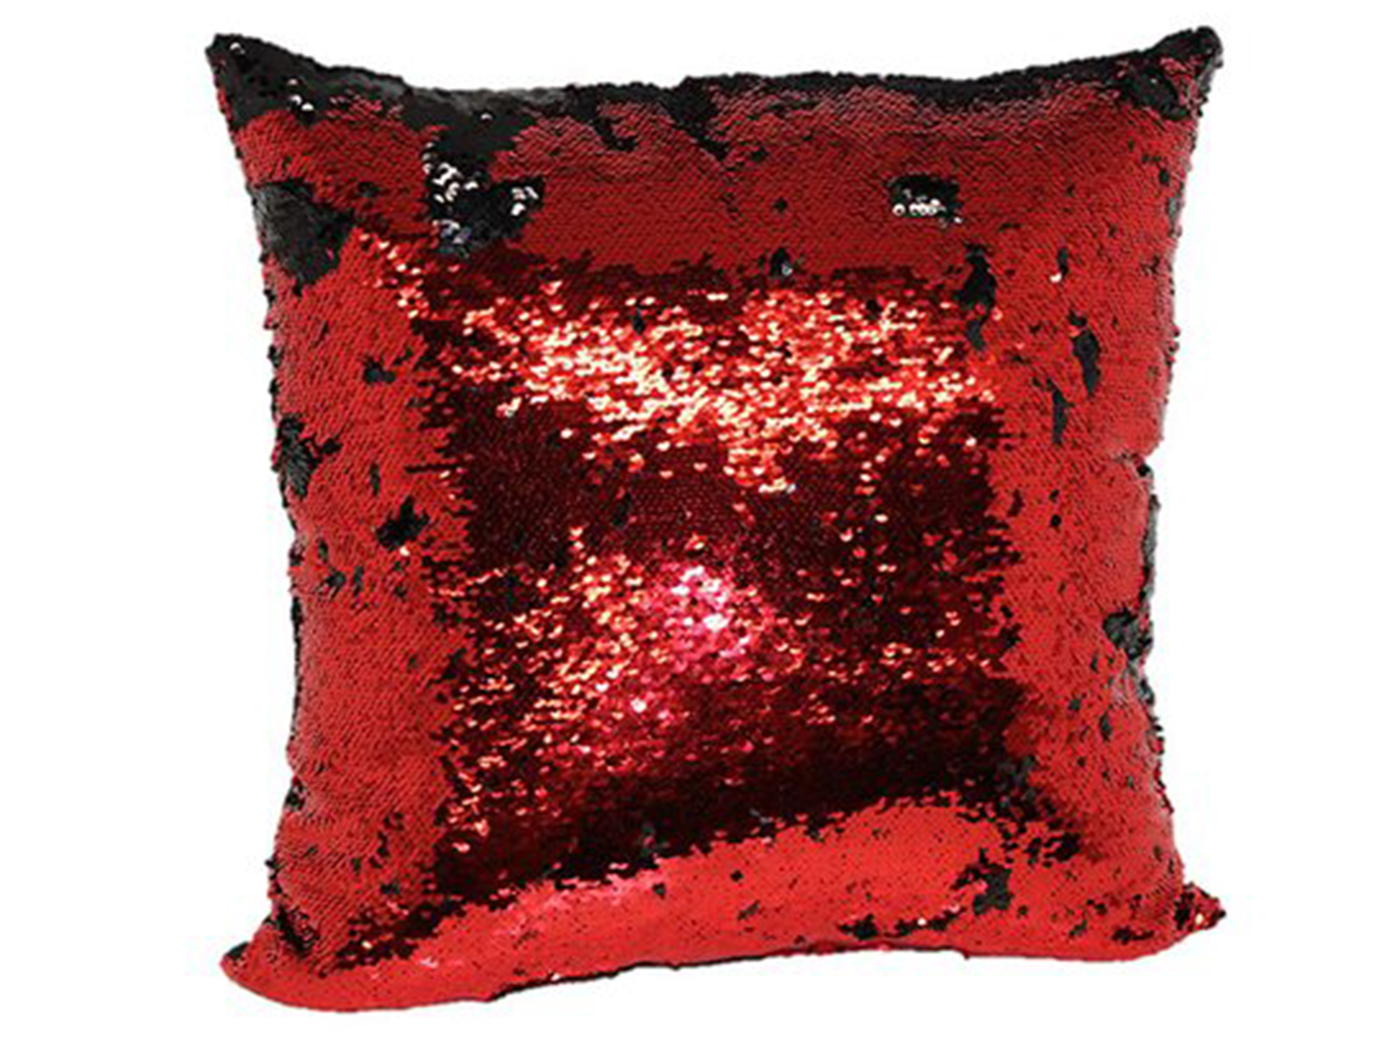 Red And Black Mermaid Pillow 18""